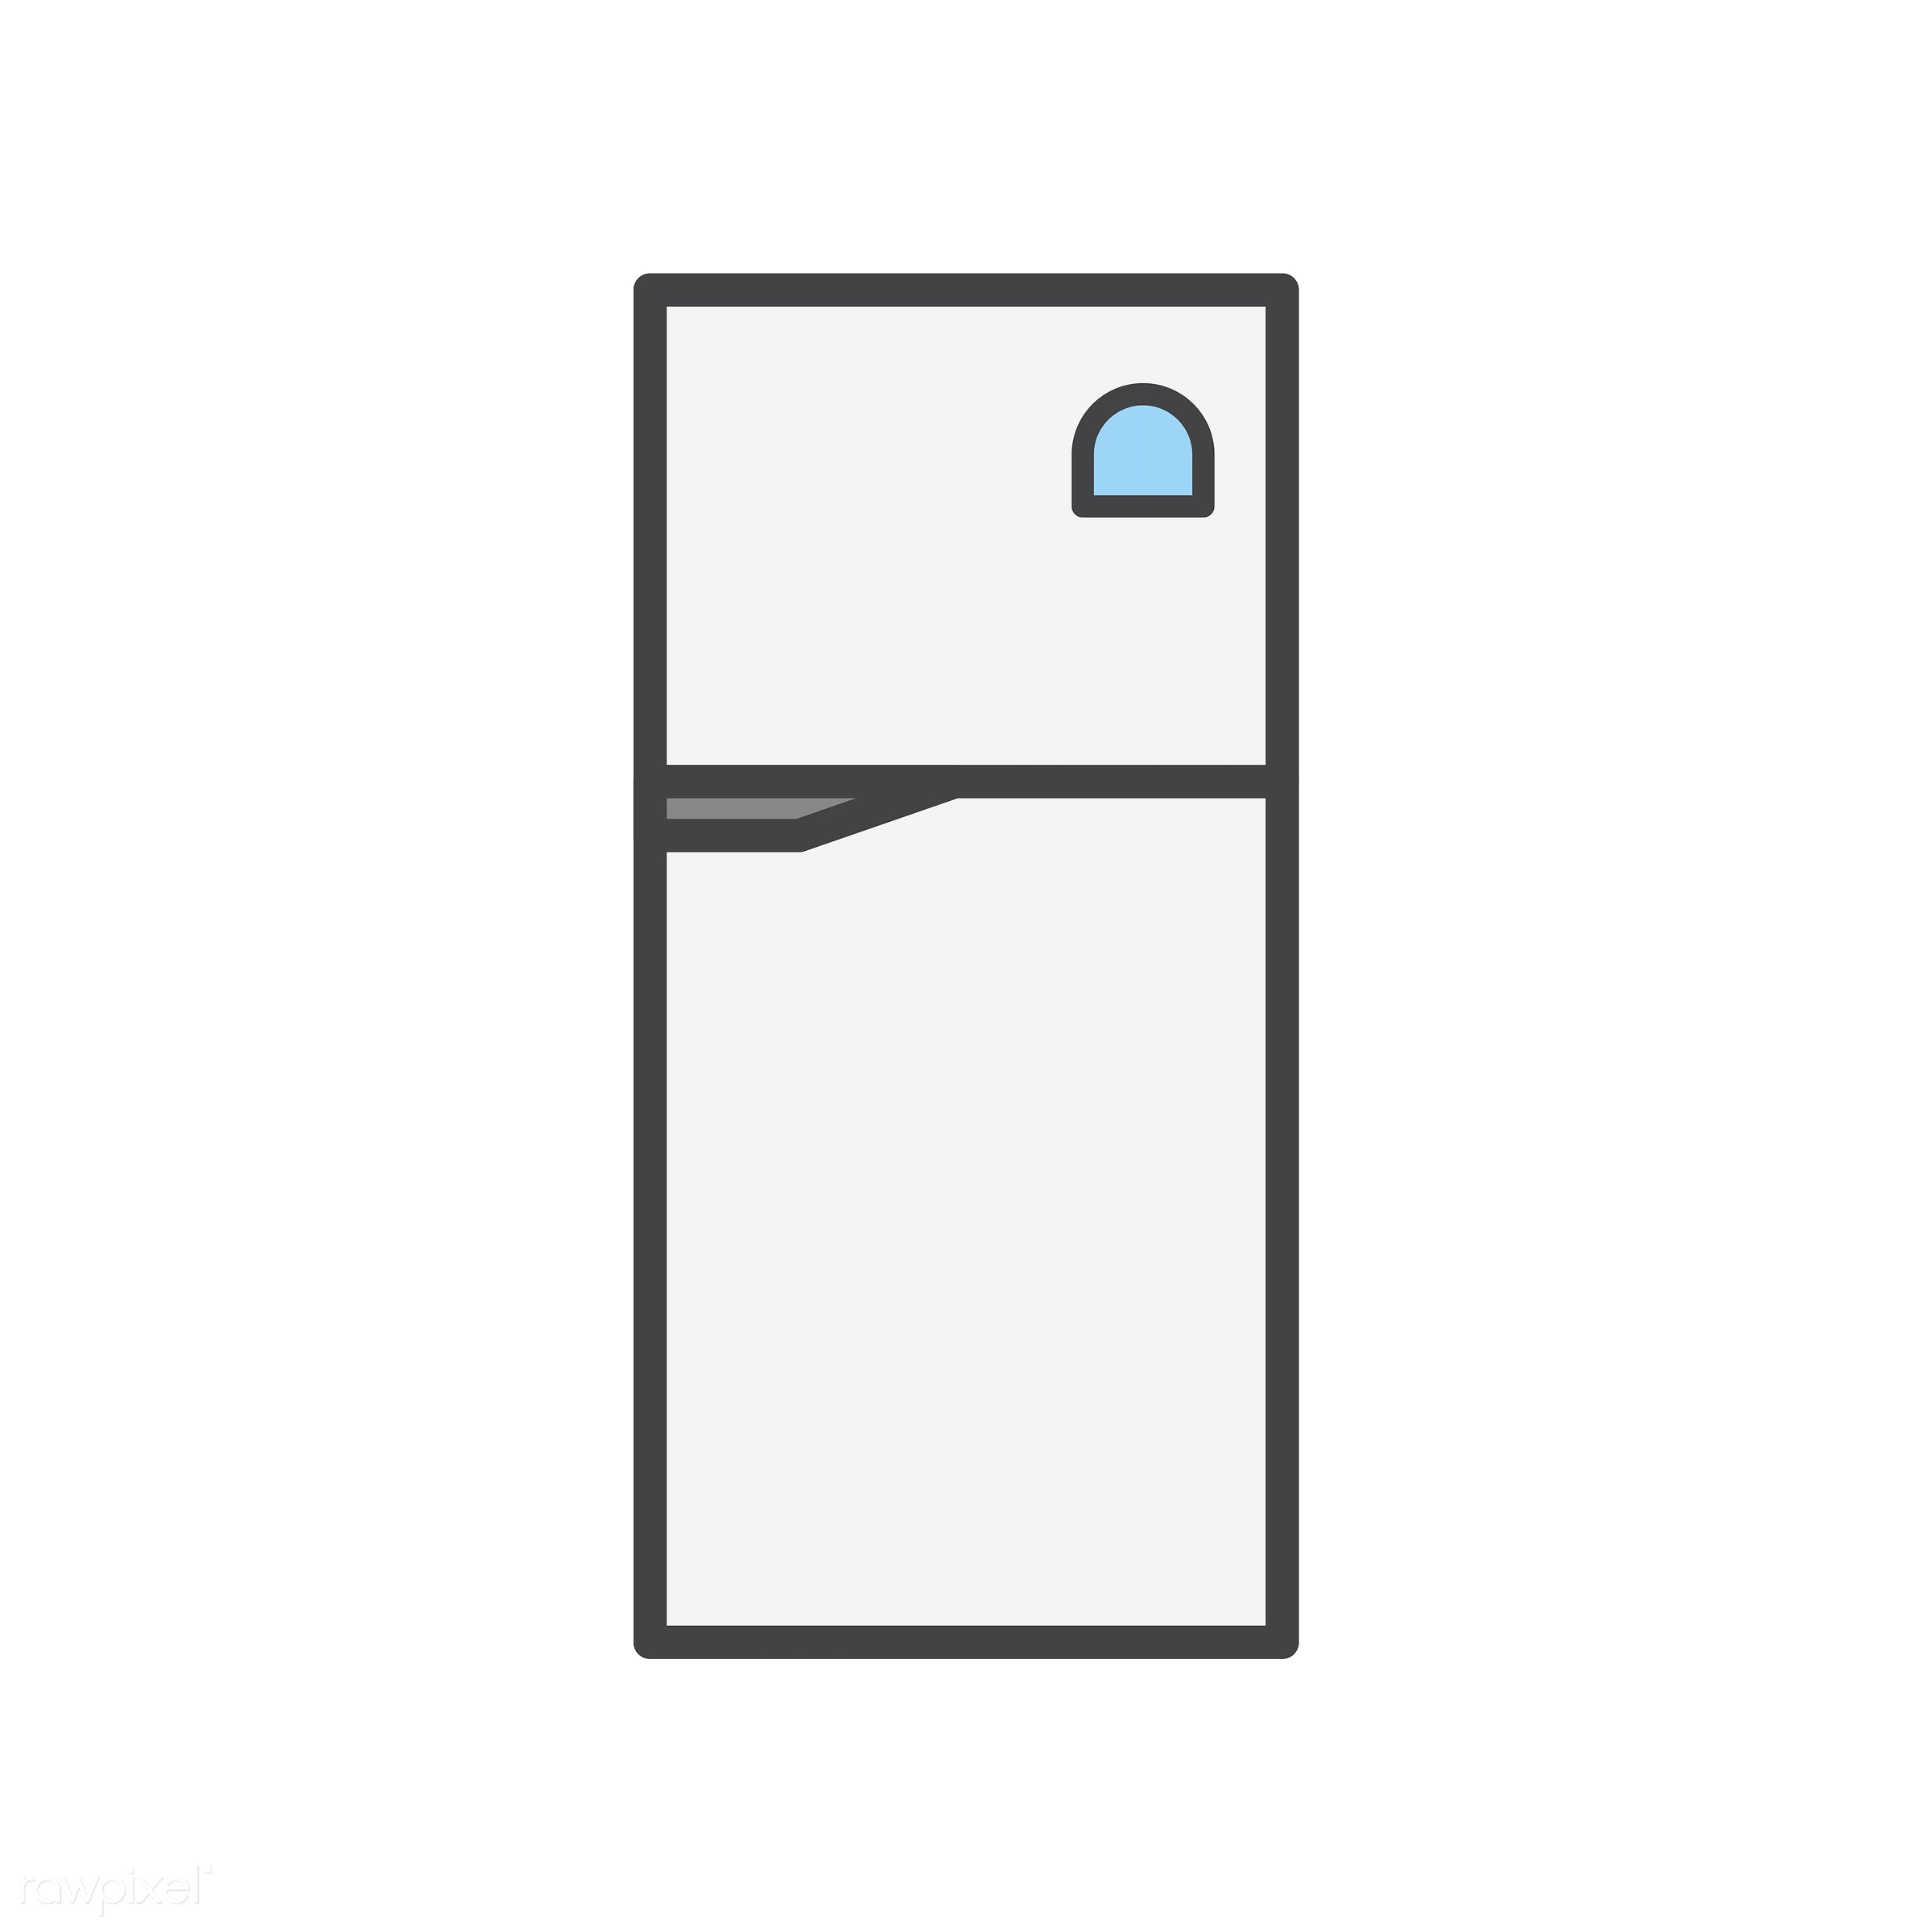 freezer, fridge, cold, refrigerator, abode, adults, comfort, cool, cozy, dwelling, food, home, homely, house, household,...